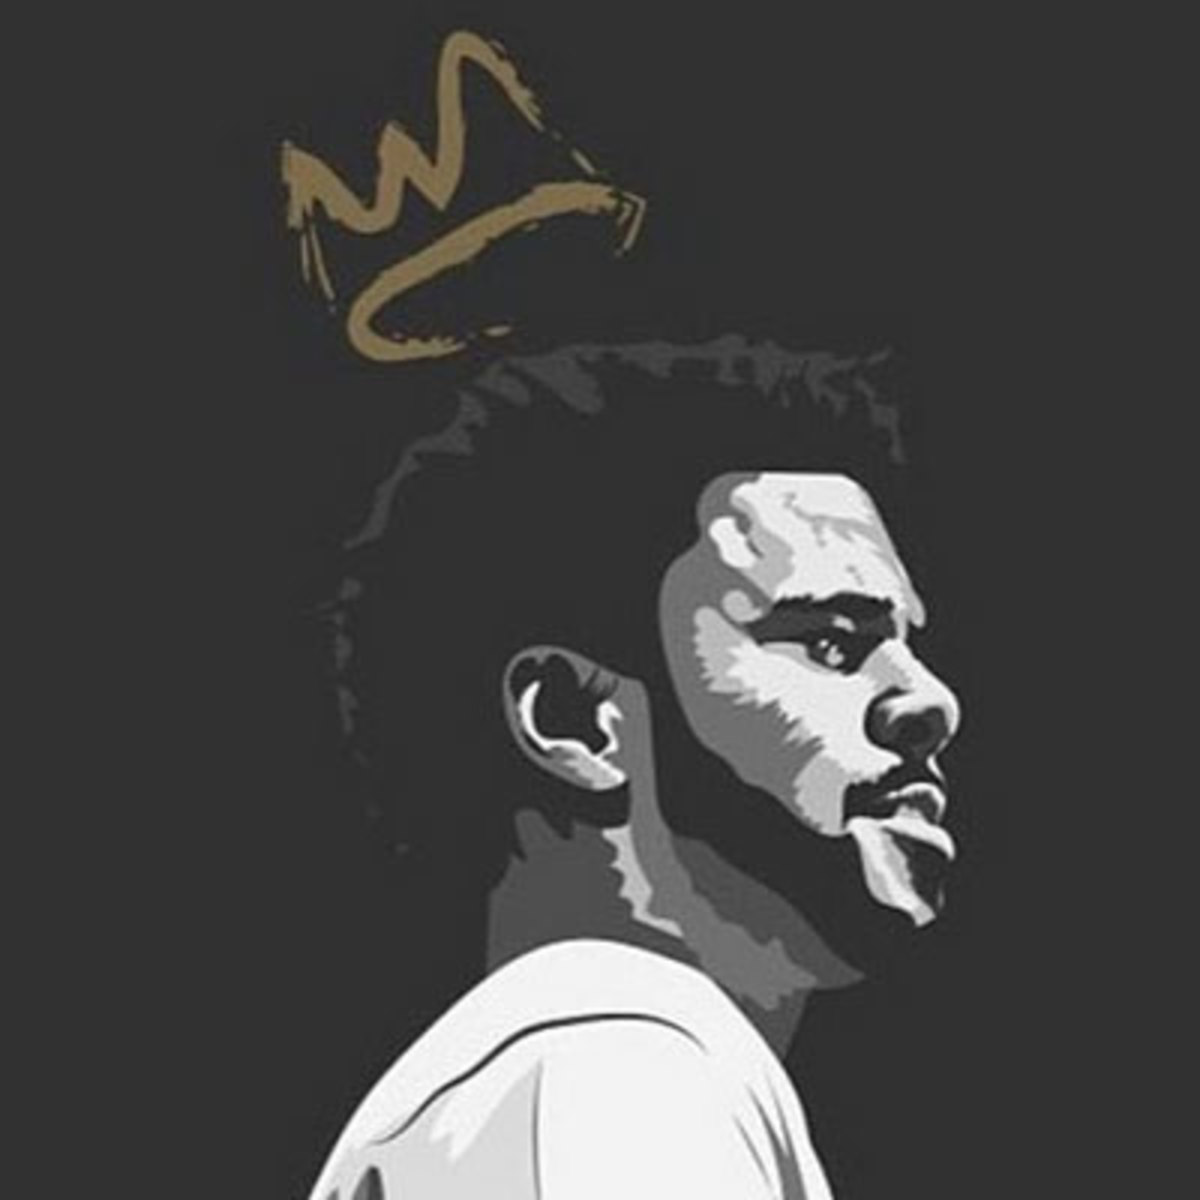 Kendrick Lamar Wallpaper Iphone X J Cole Has A Bright Future But Will It Be At Roc Nation